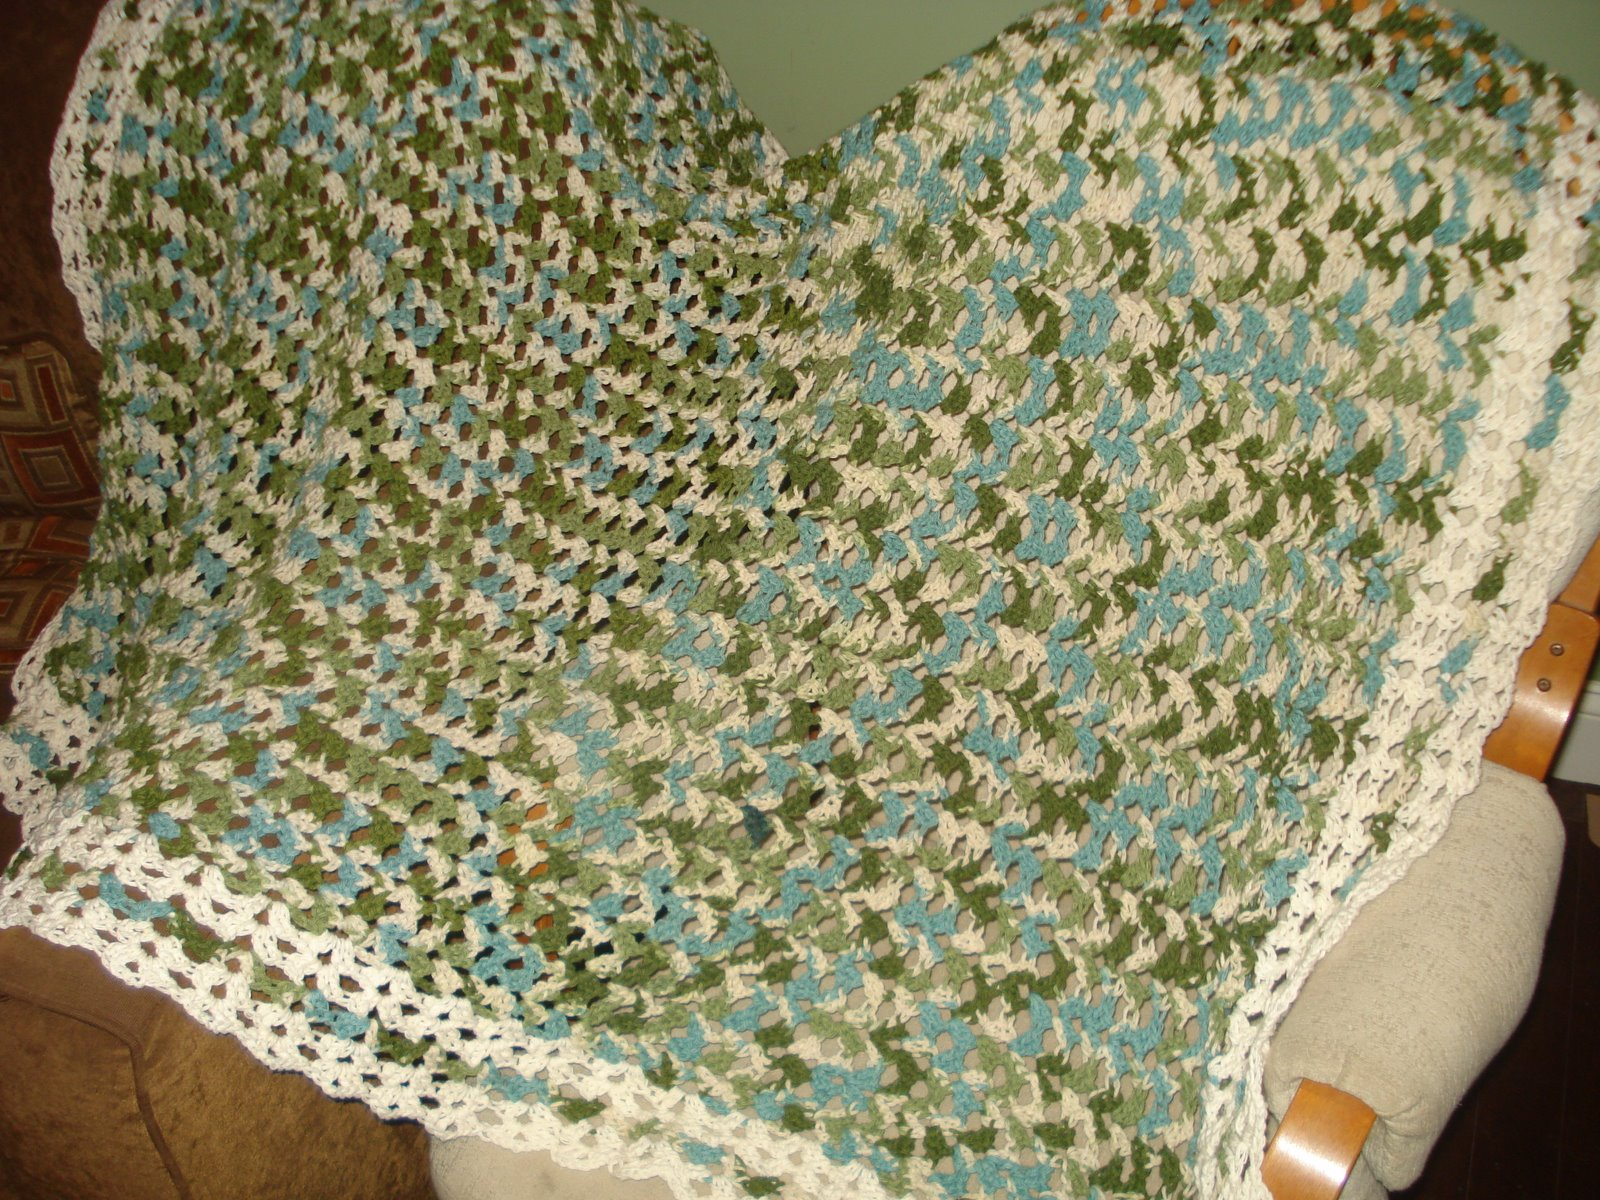 Crochet Baby Blanket Patterns Variegated Yarn : A Ginger Mess: Crocheted Blanket with Variegated Yarn